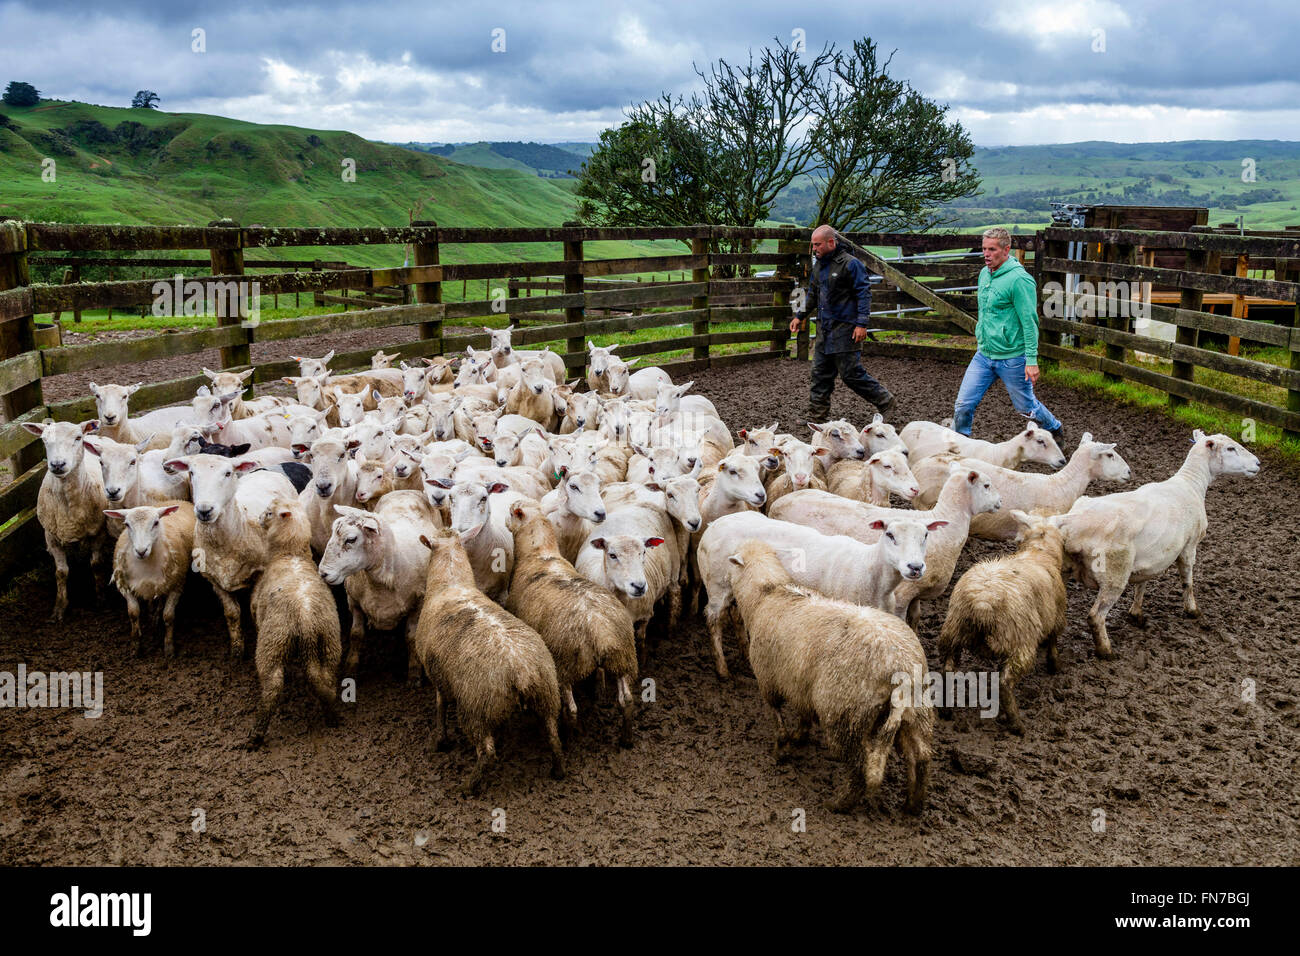 Two Sheep Farmers Herding Sheep, Sheep Farm, Pukekohe, New Zealand - Stock Image